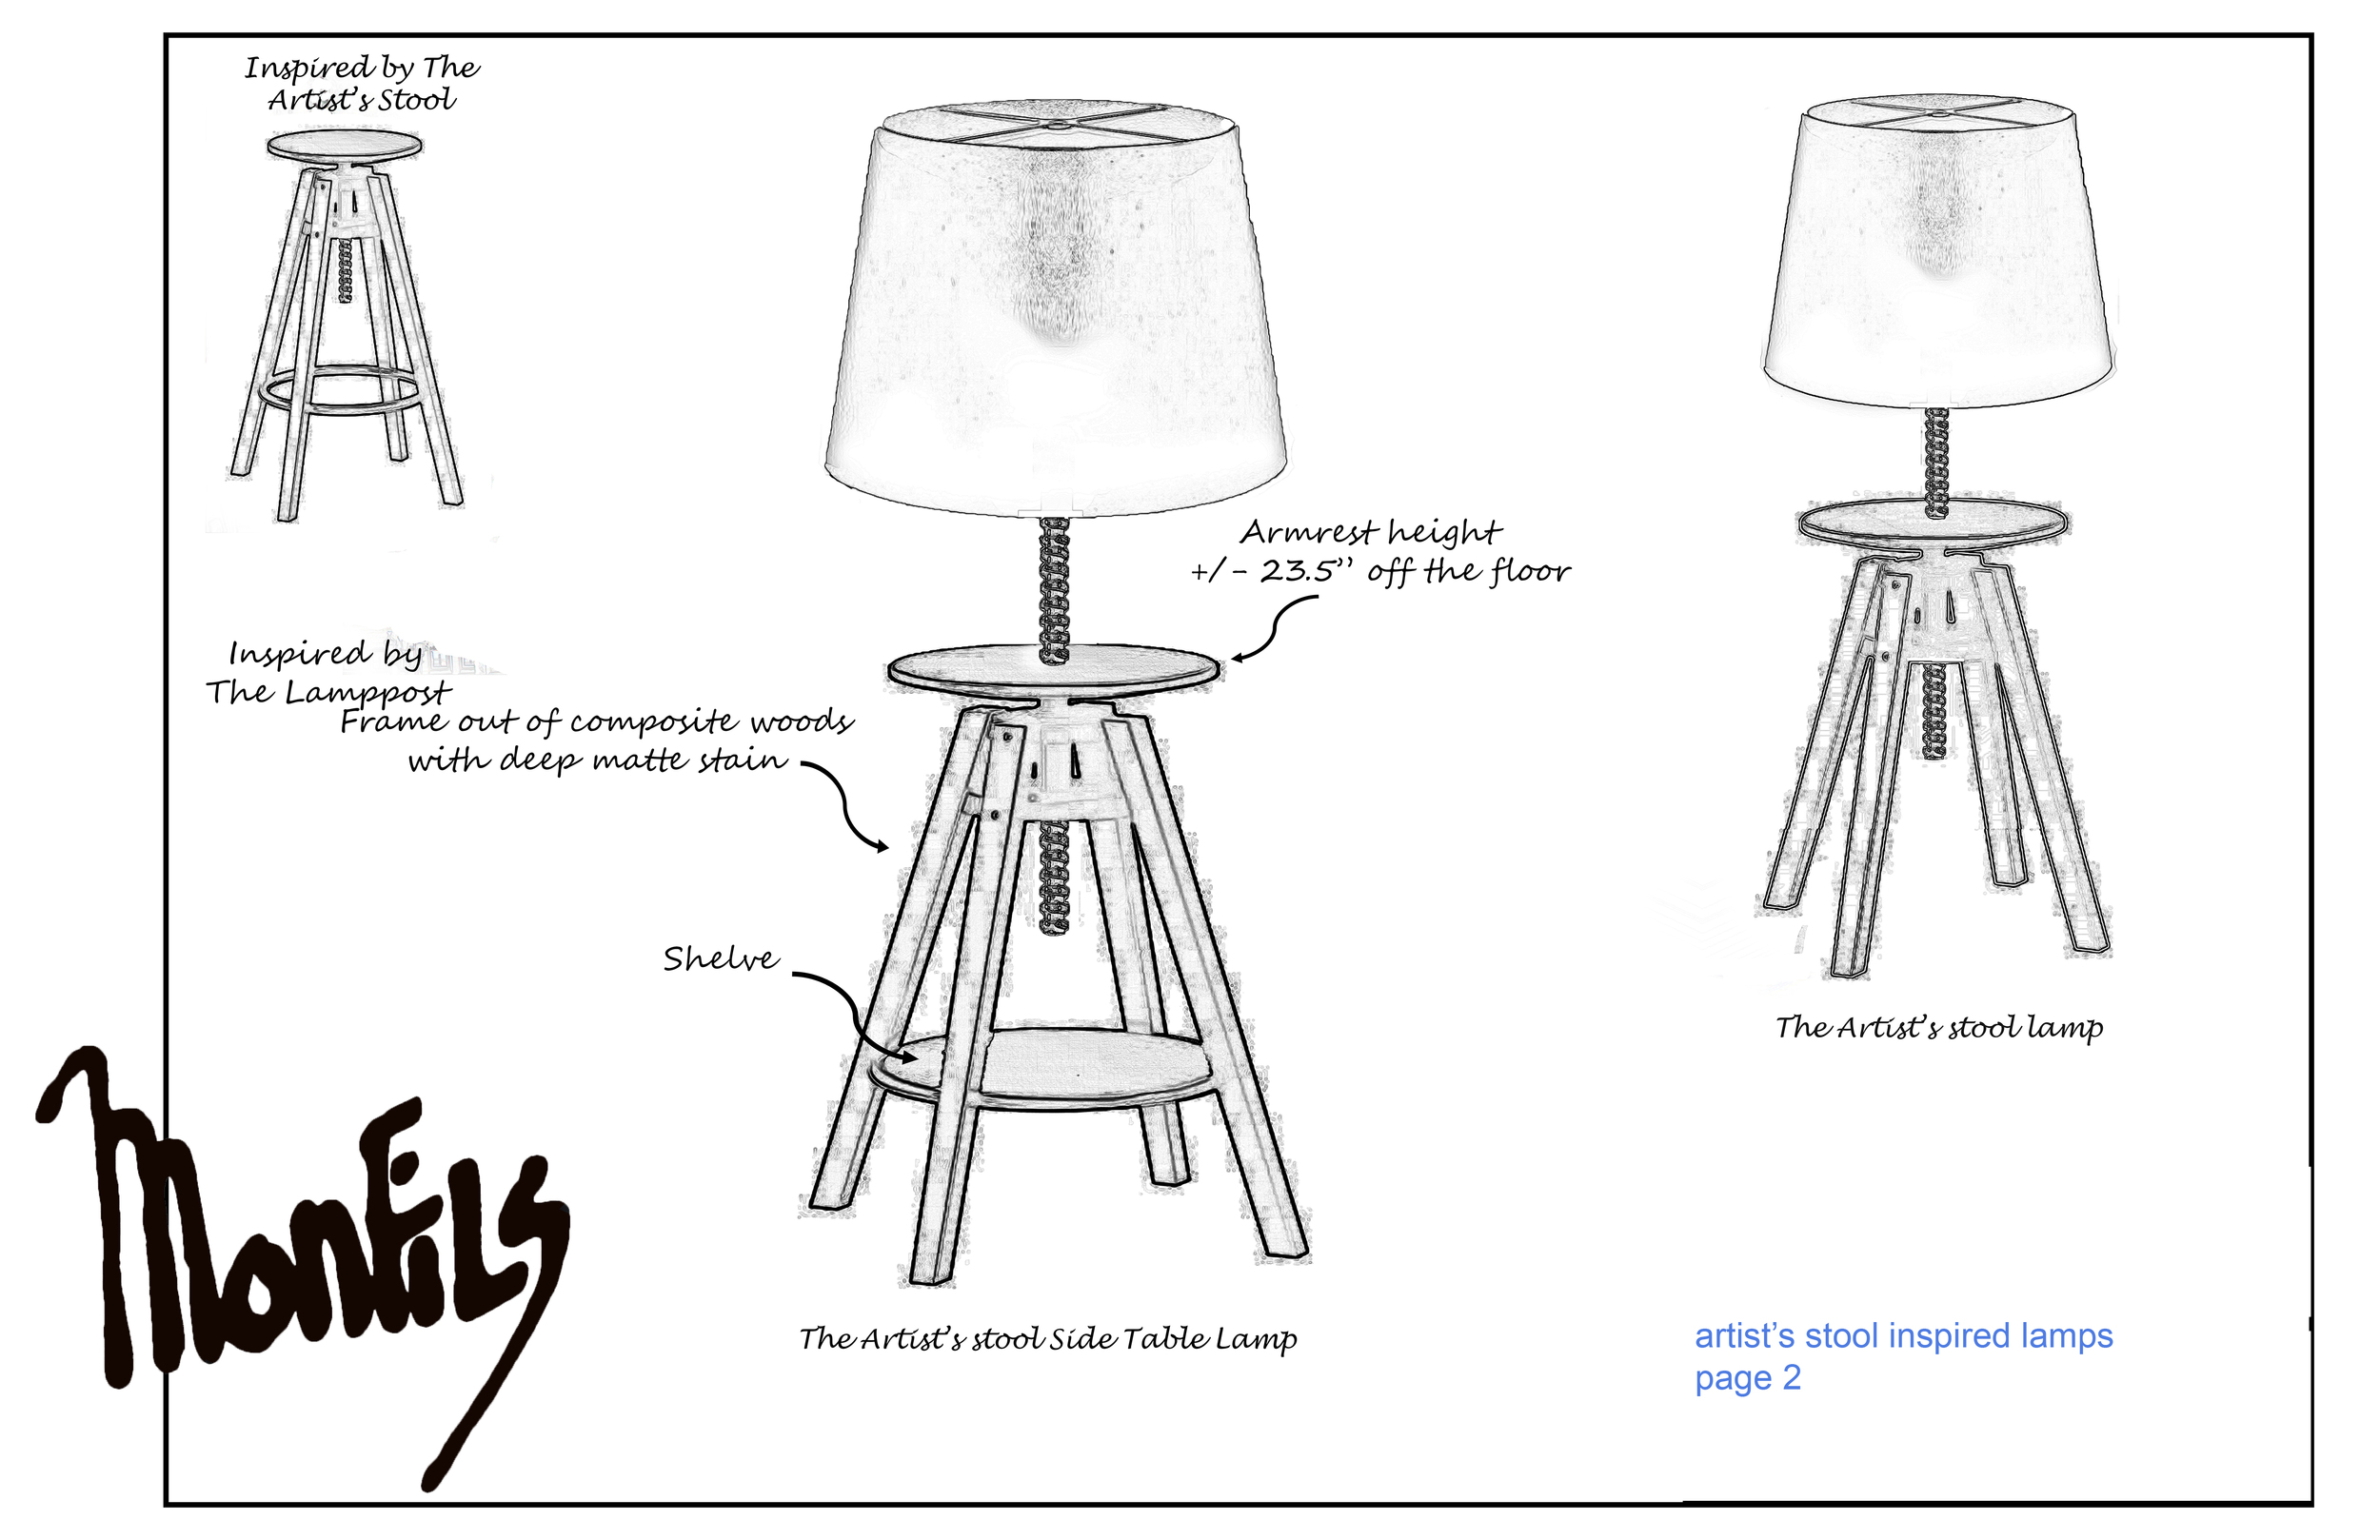 artist's stool inspired lamps page 2.jpg